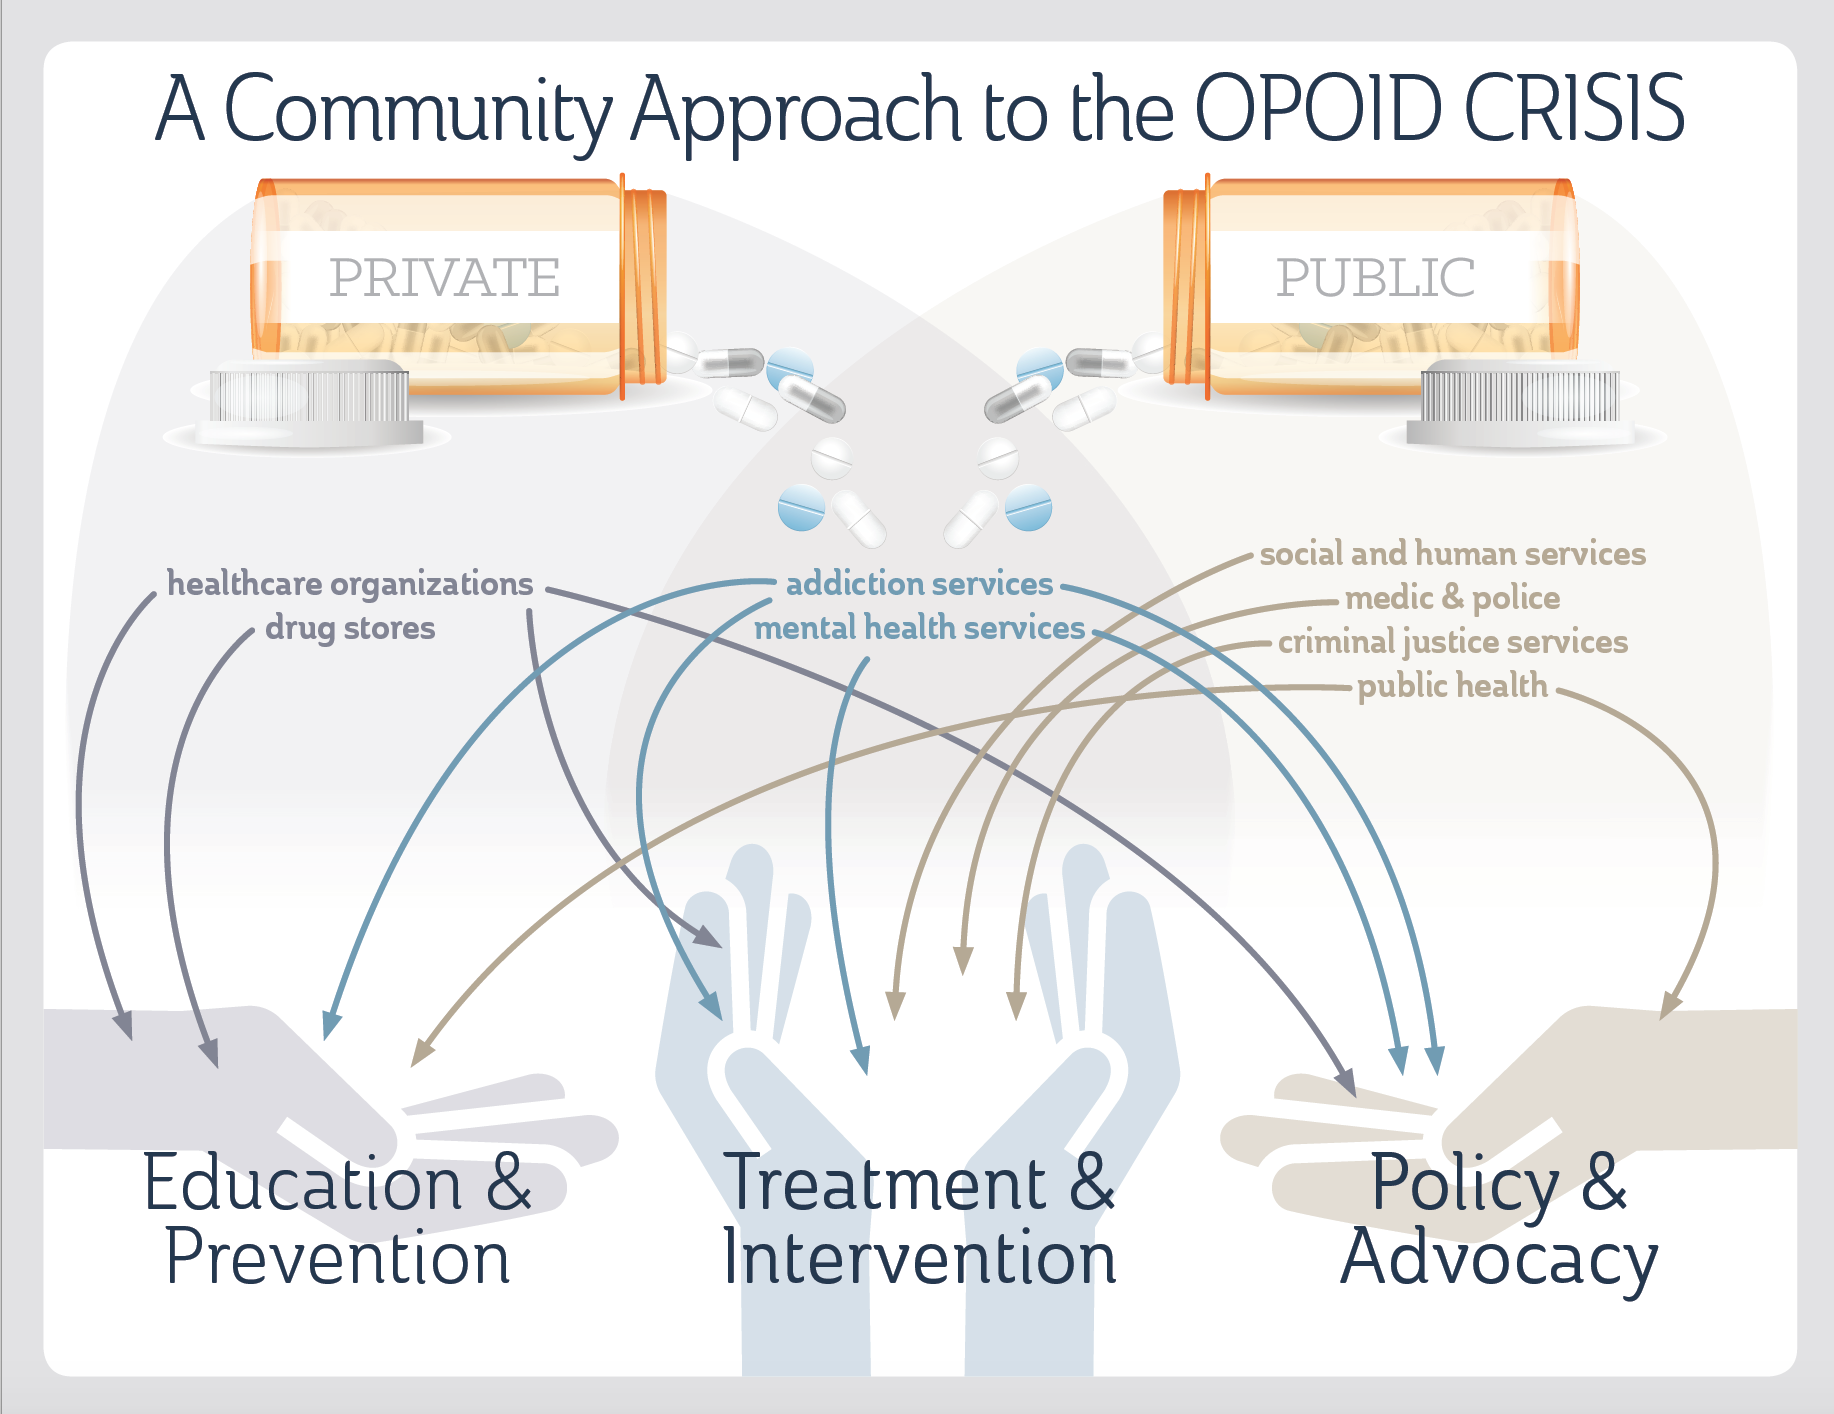 Infographic about the community approach to the opioid epidemic.